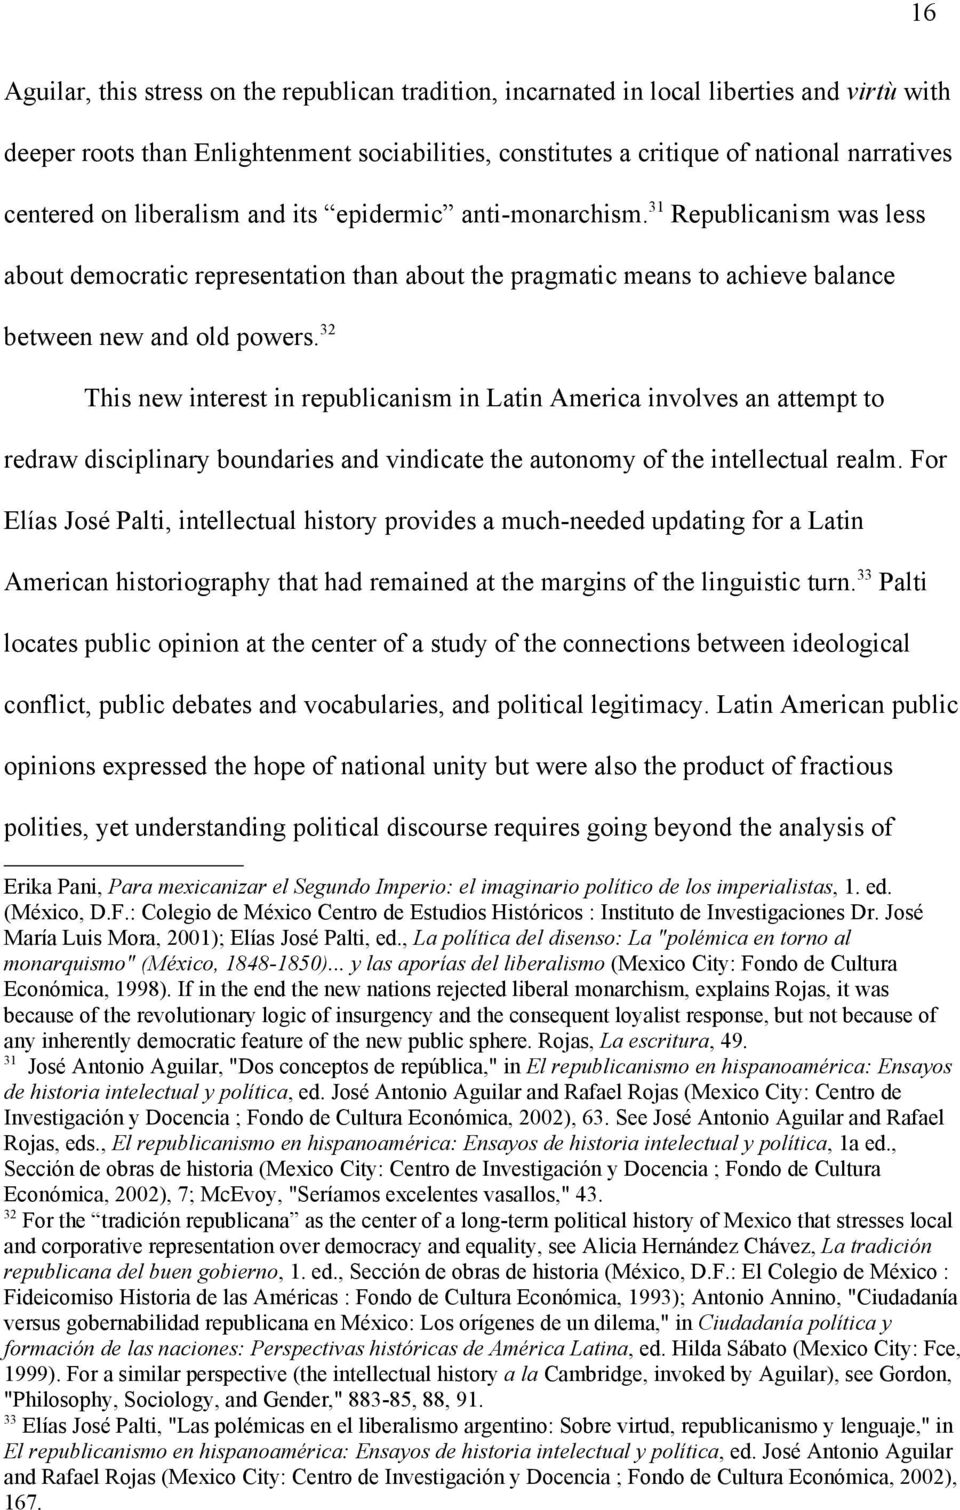 32 This new interest in republicanism in Latin America involves an attempt to redraw disciplinary boundaries and vindicate the autonomy of the intellectual realm.